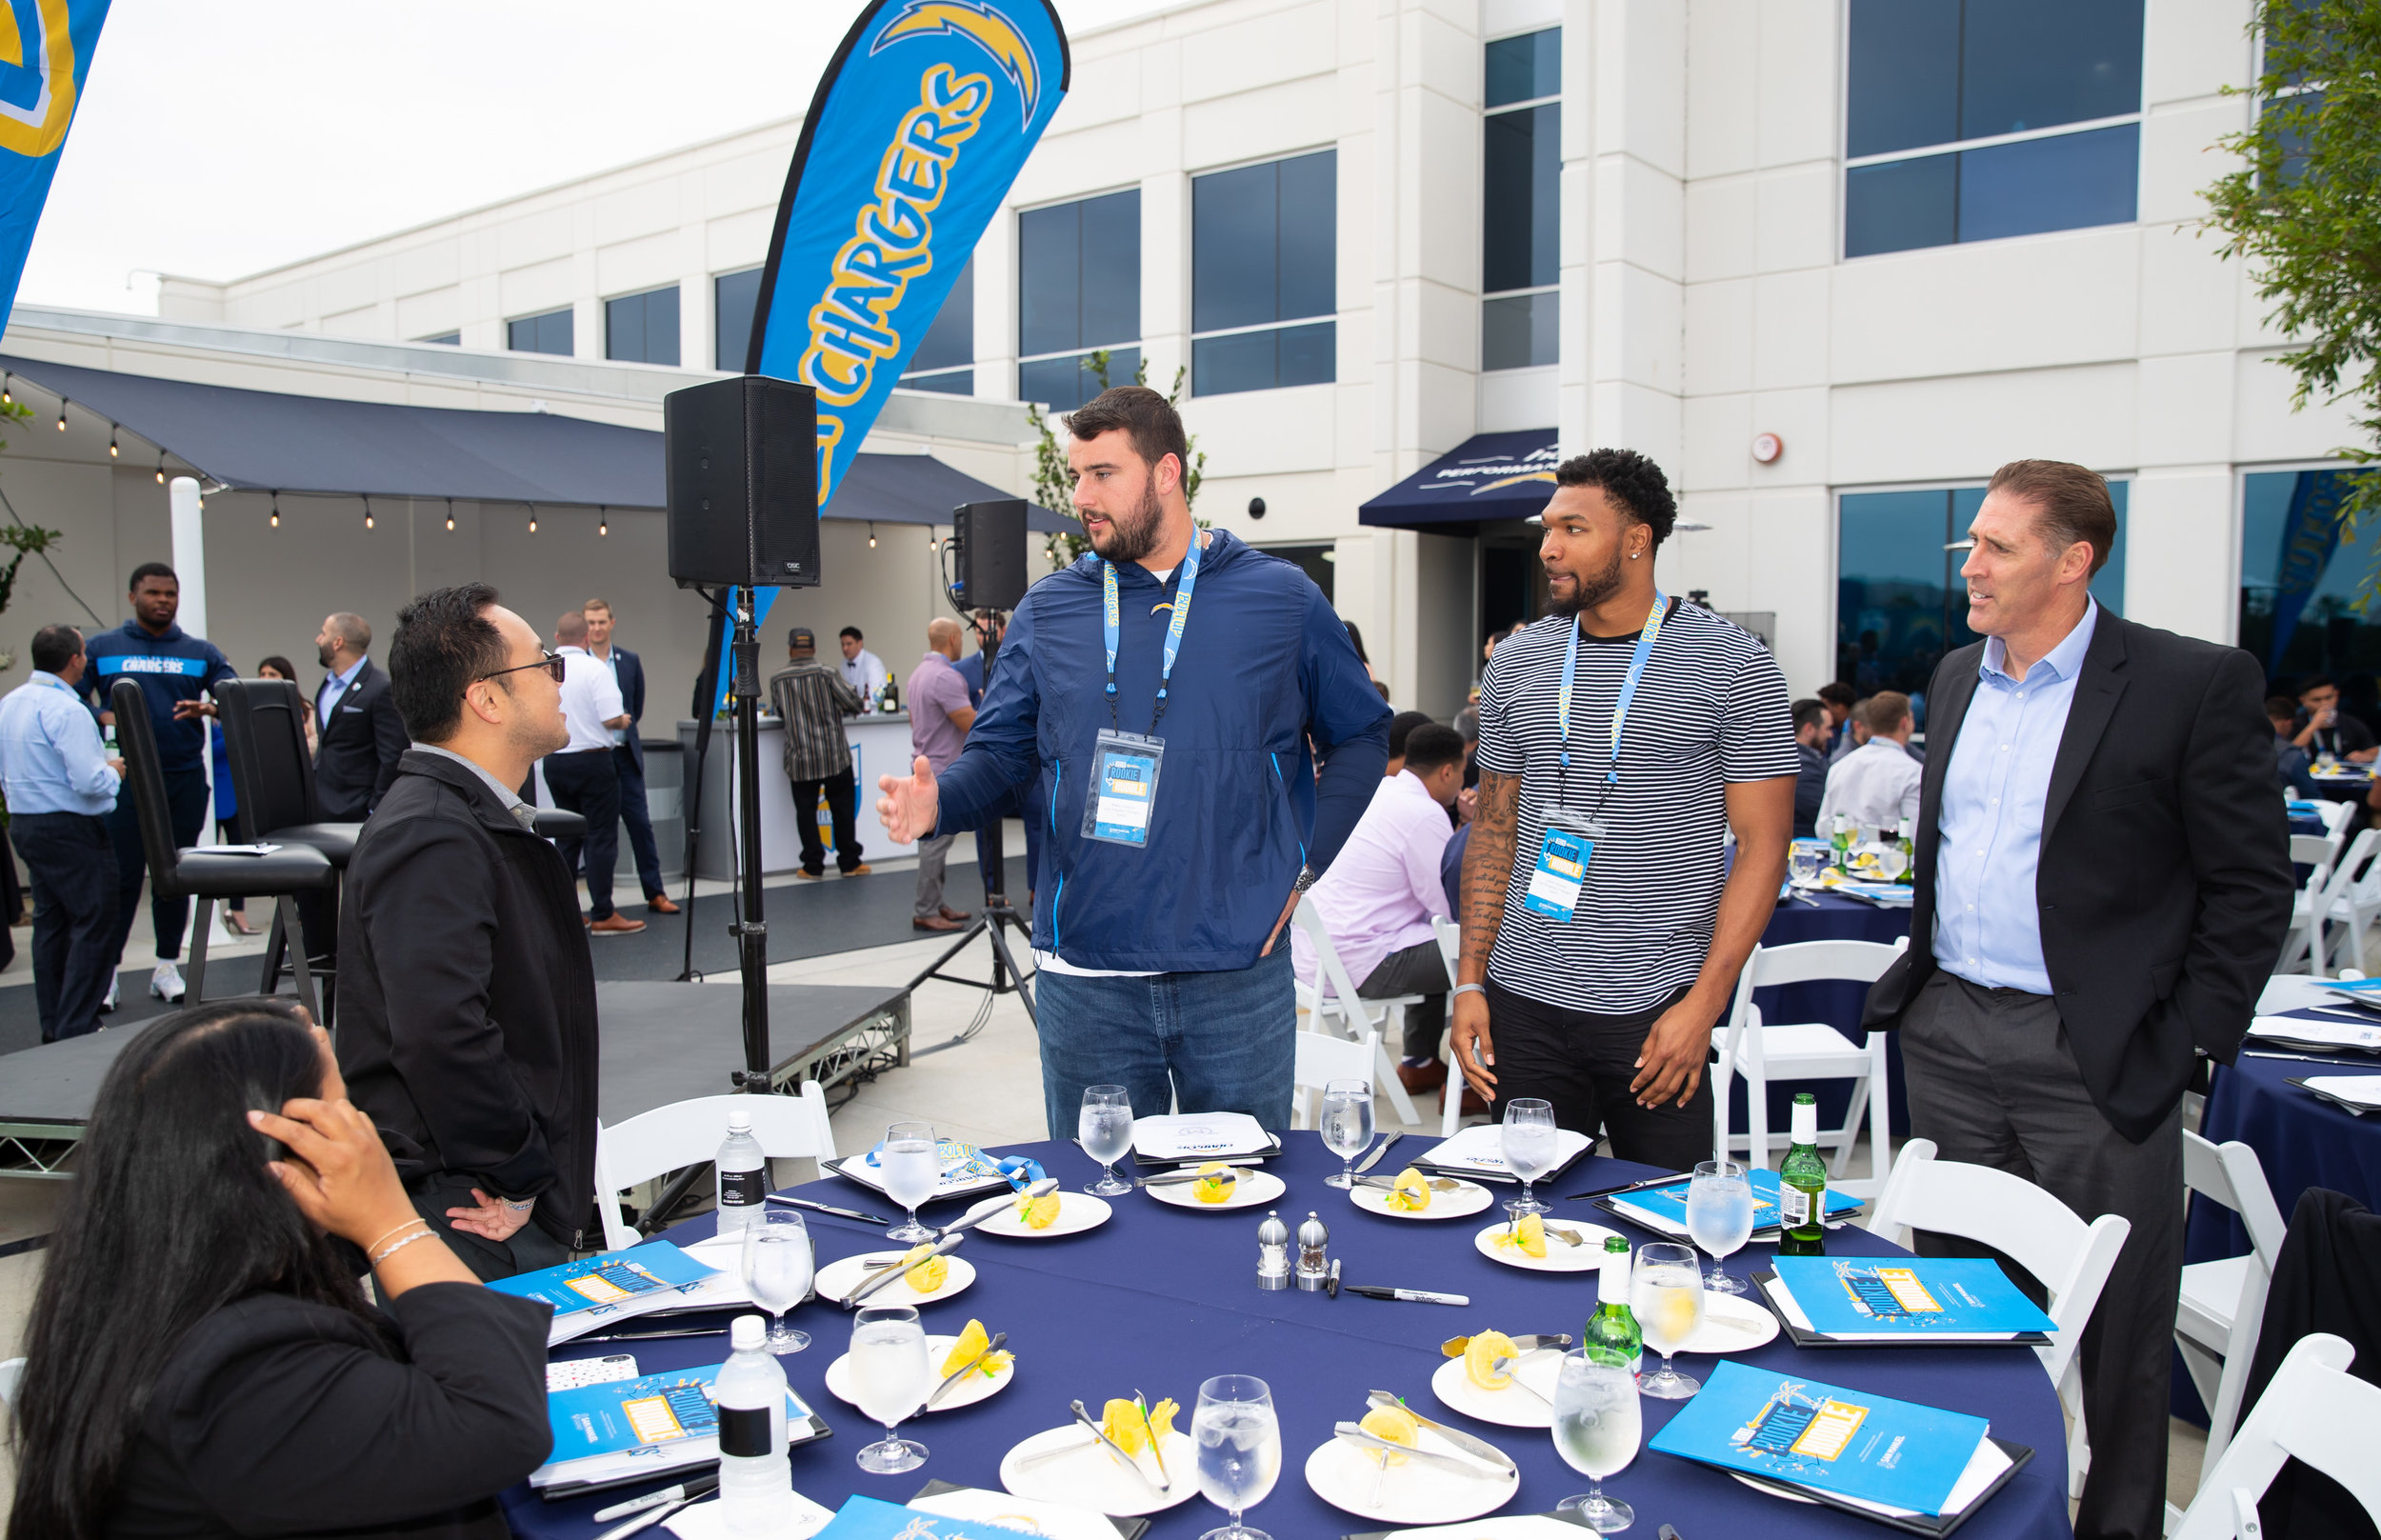 061719_Rookie_Networking_Event_071.jpg